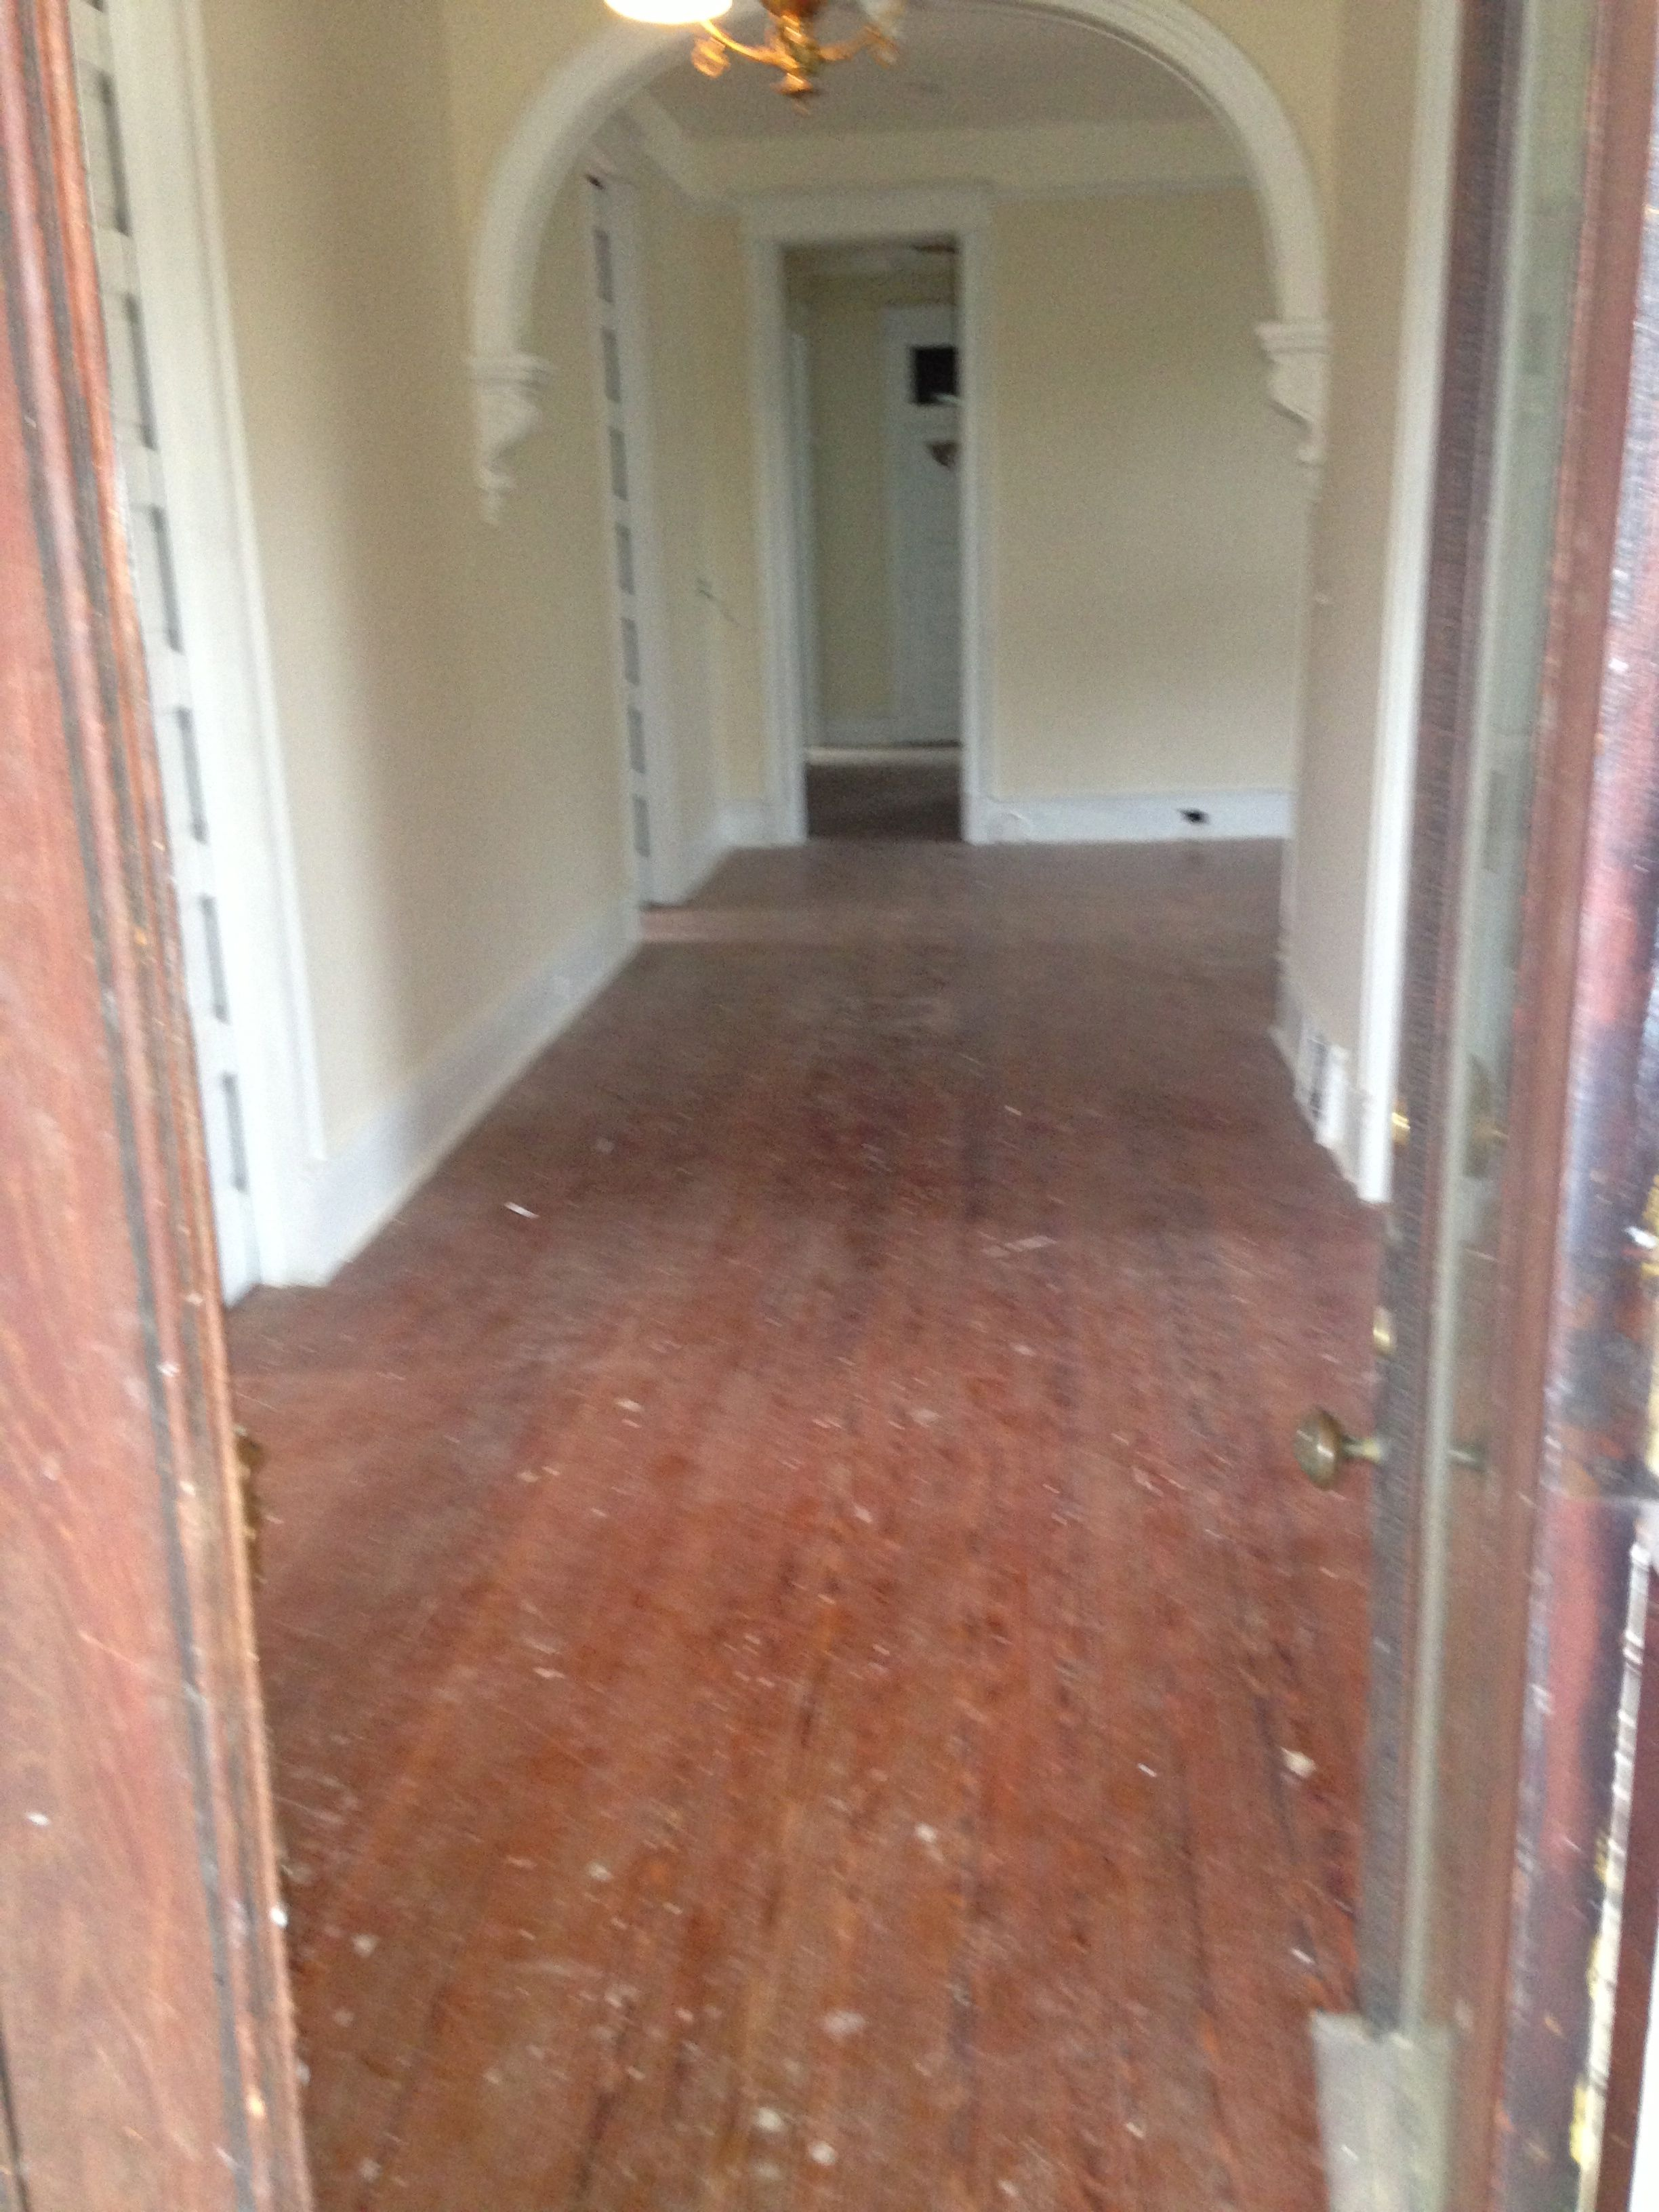 Pictured dusty and scuffed hardwood floors prior to refinishing